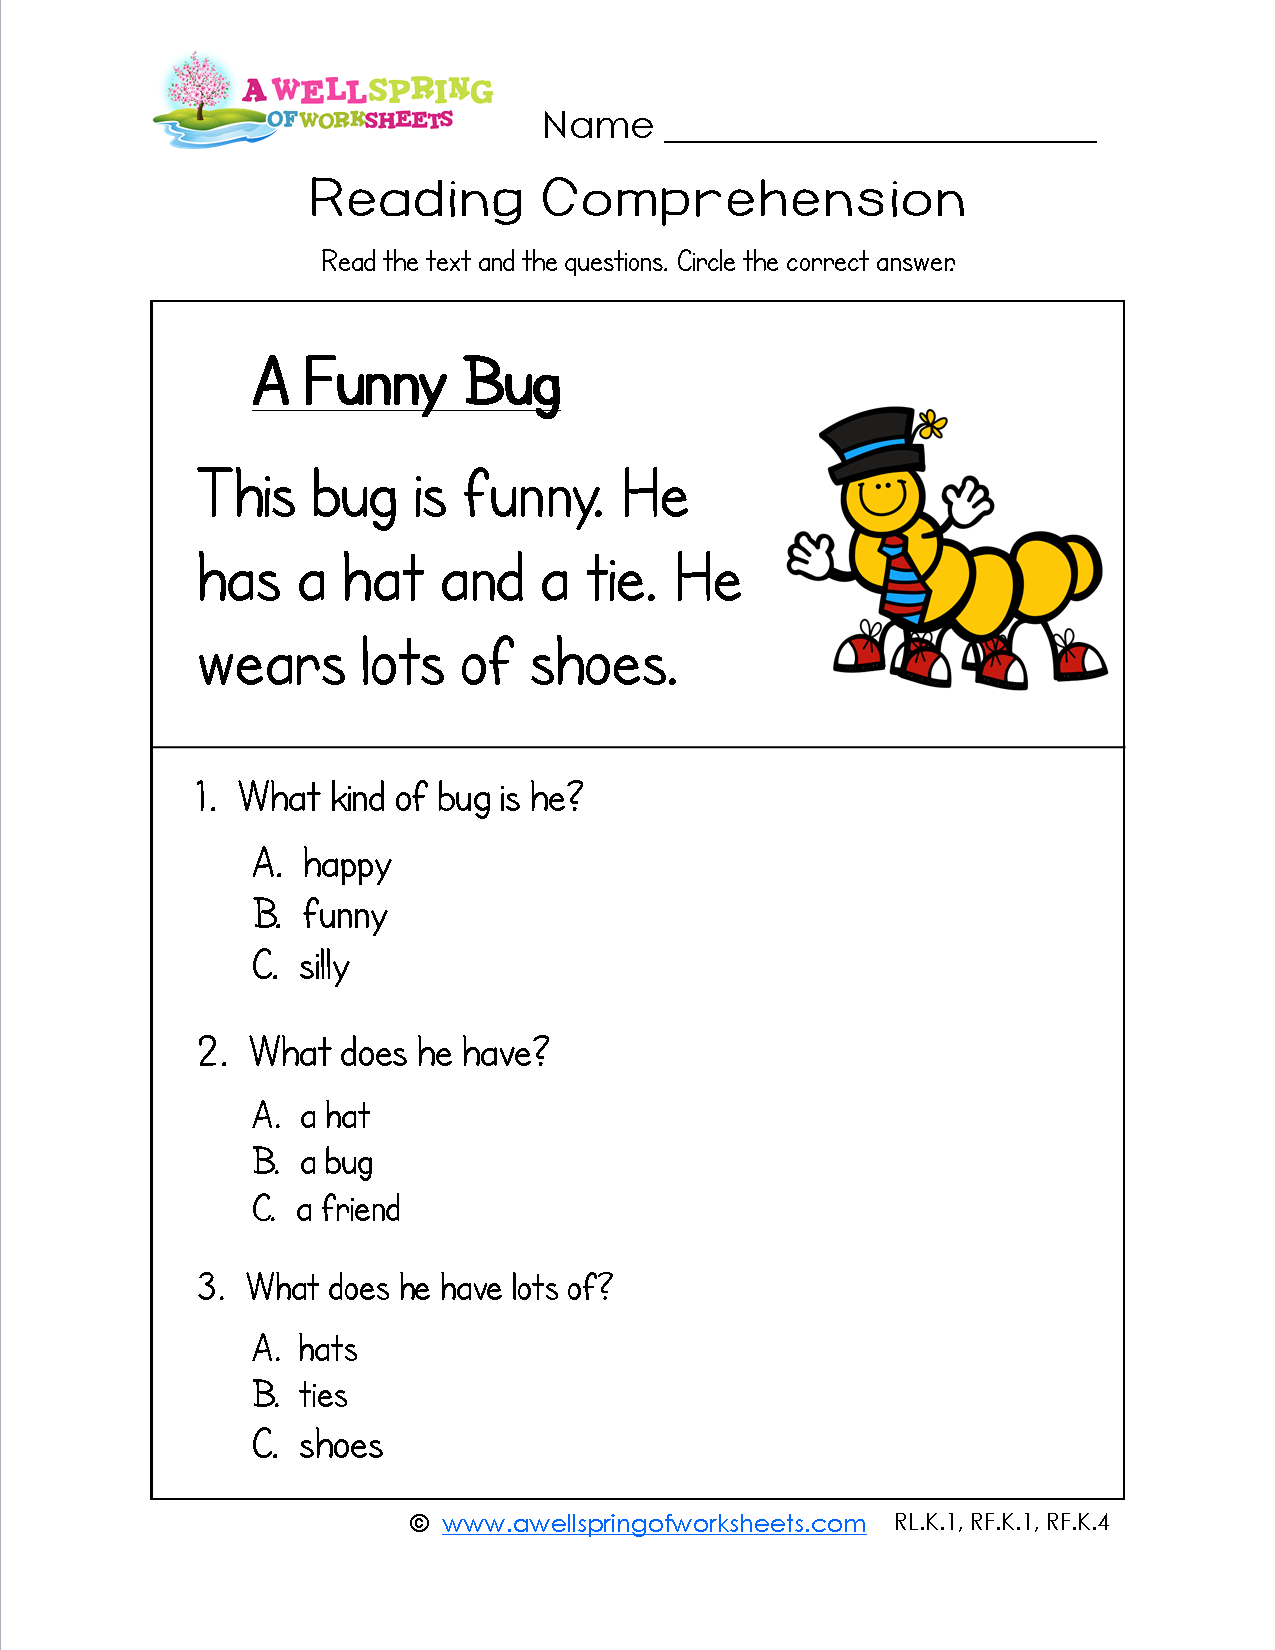 Worksheets Sentence Comprehension Worksheets a funny bug has three simple sentences and comprehension questions this worksheet is one